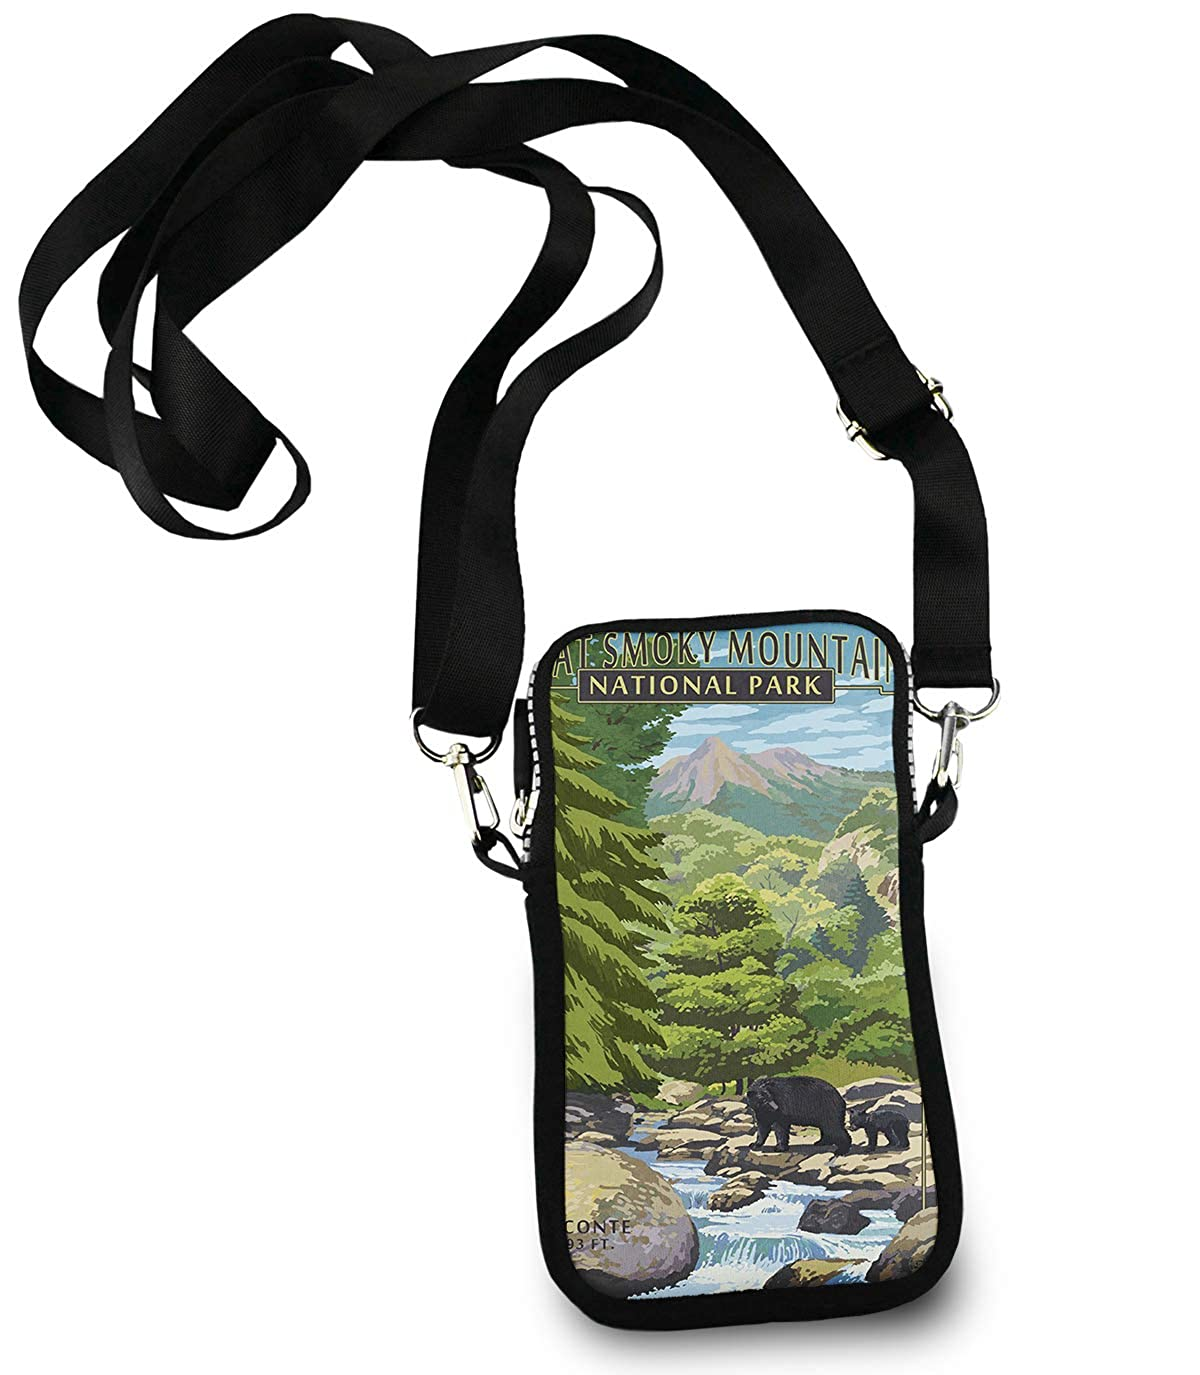 Casual Security Pack Crossbody Phone Pouch With Shoulder Strap Wallet Handbag Great Smoky Mountains National Park